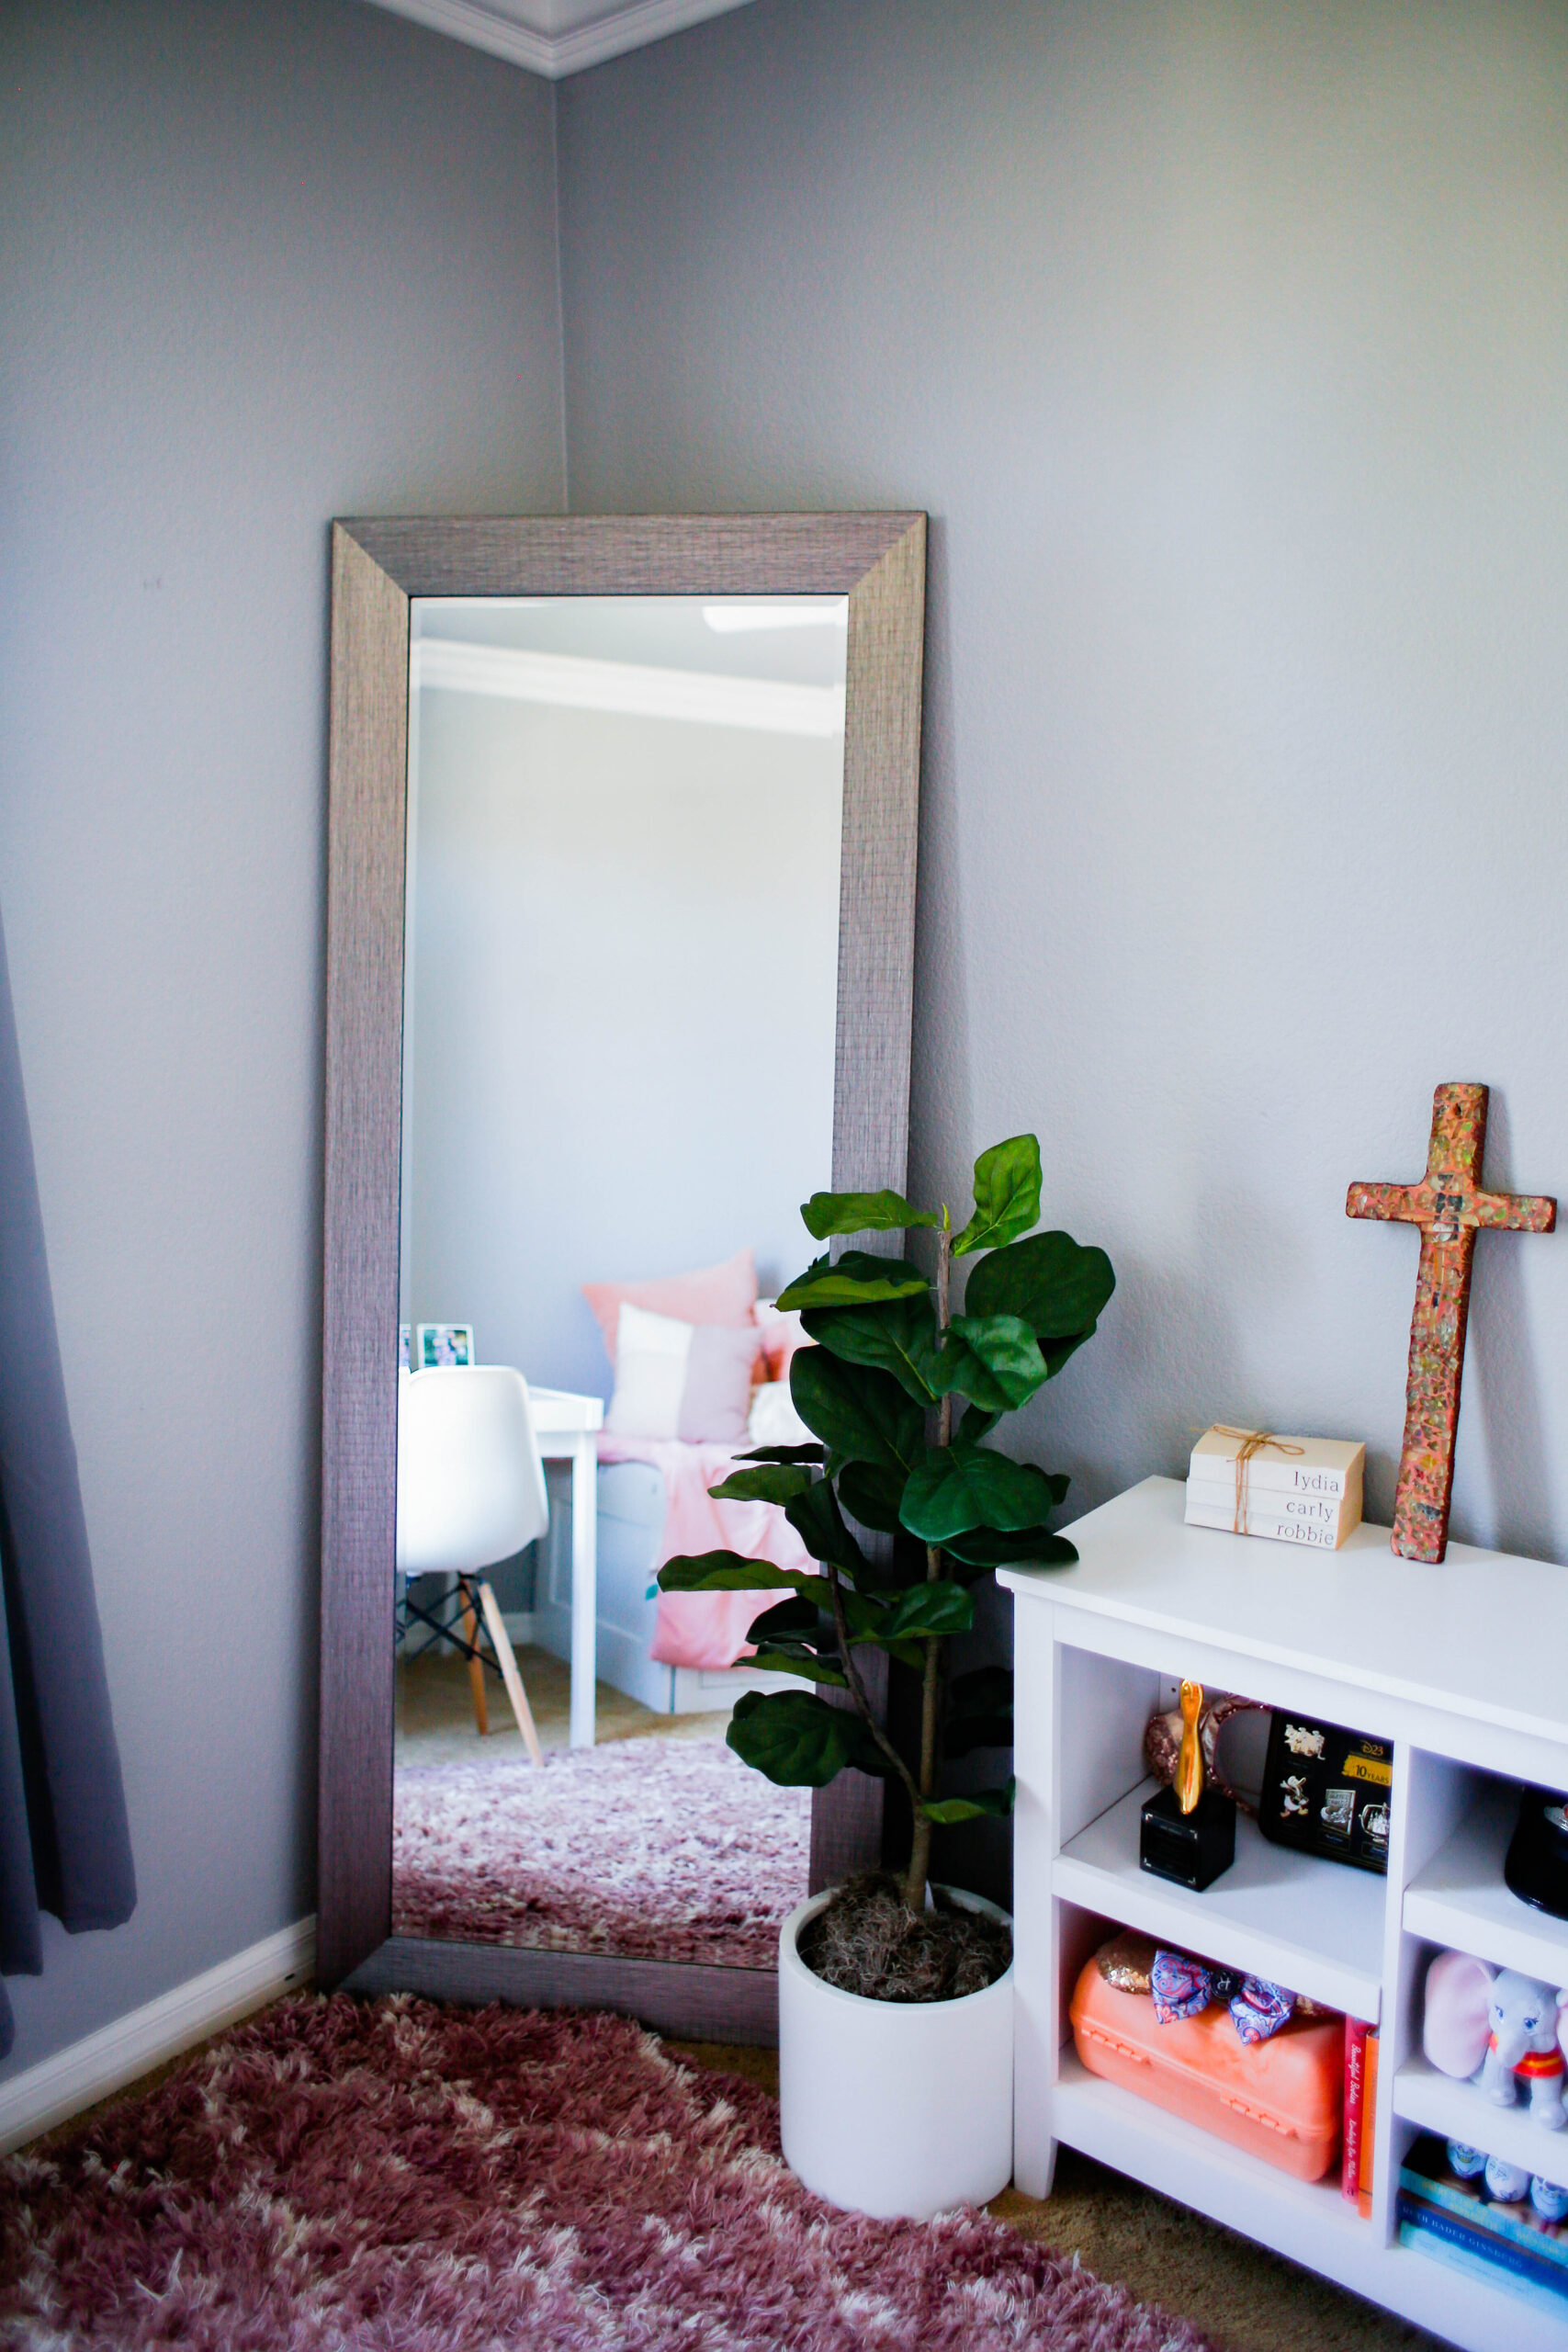 Looking for the perfect standing mirror? I love this one!